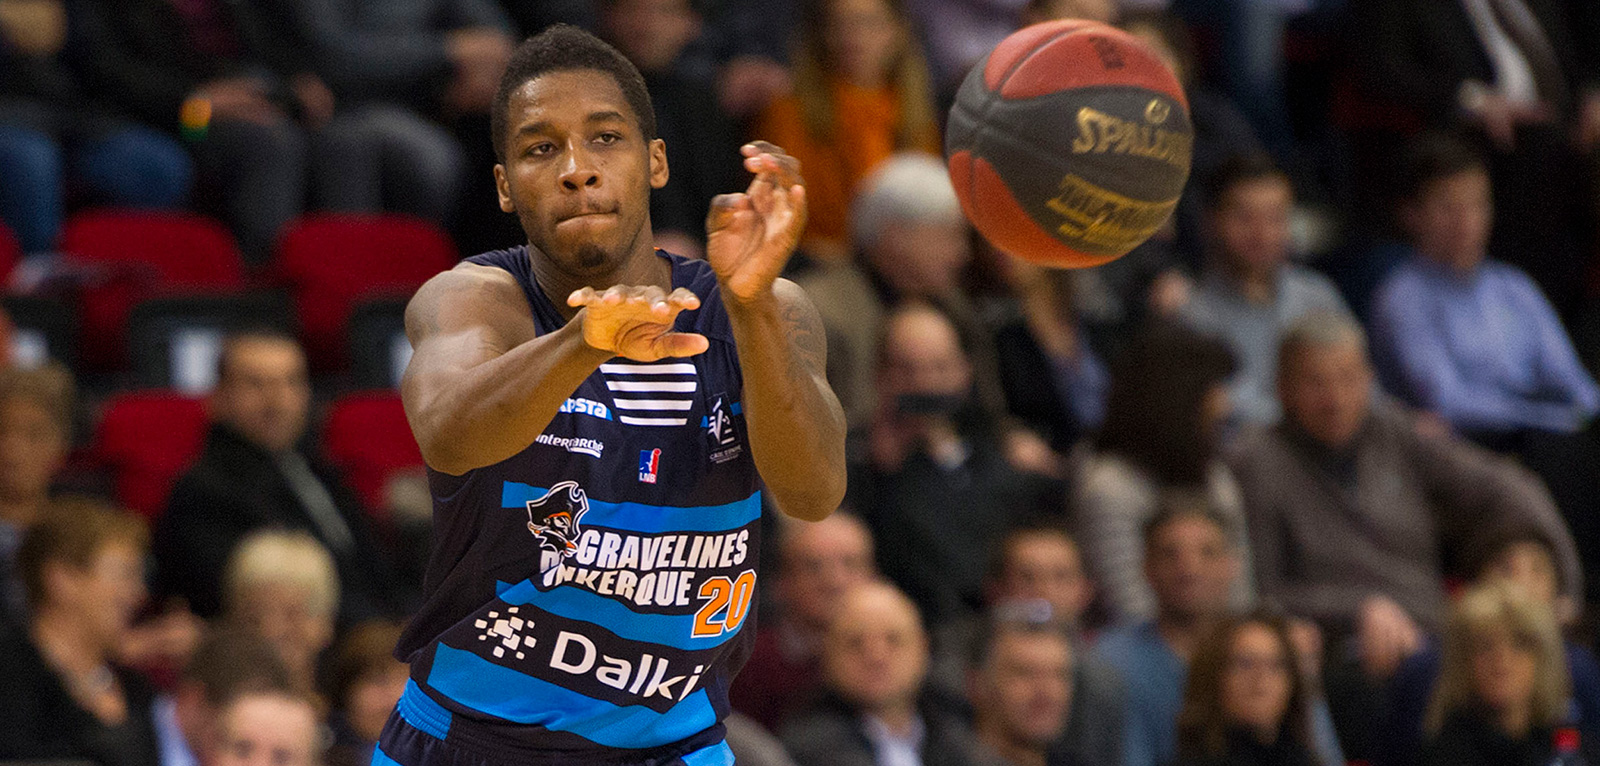 Basketball Pro A: Bourg en Bresse vs Gravelines Dunkerque en direct live streaming